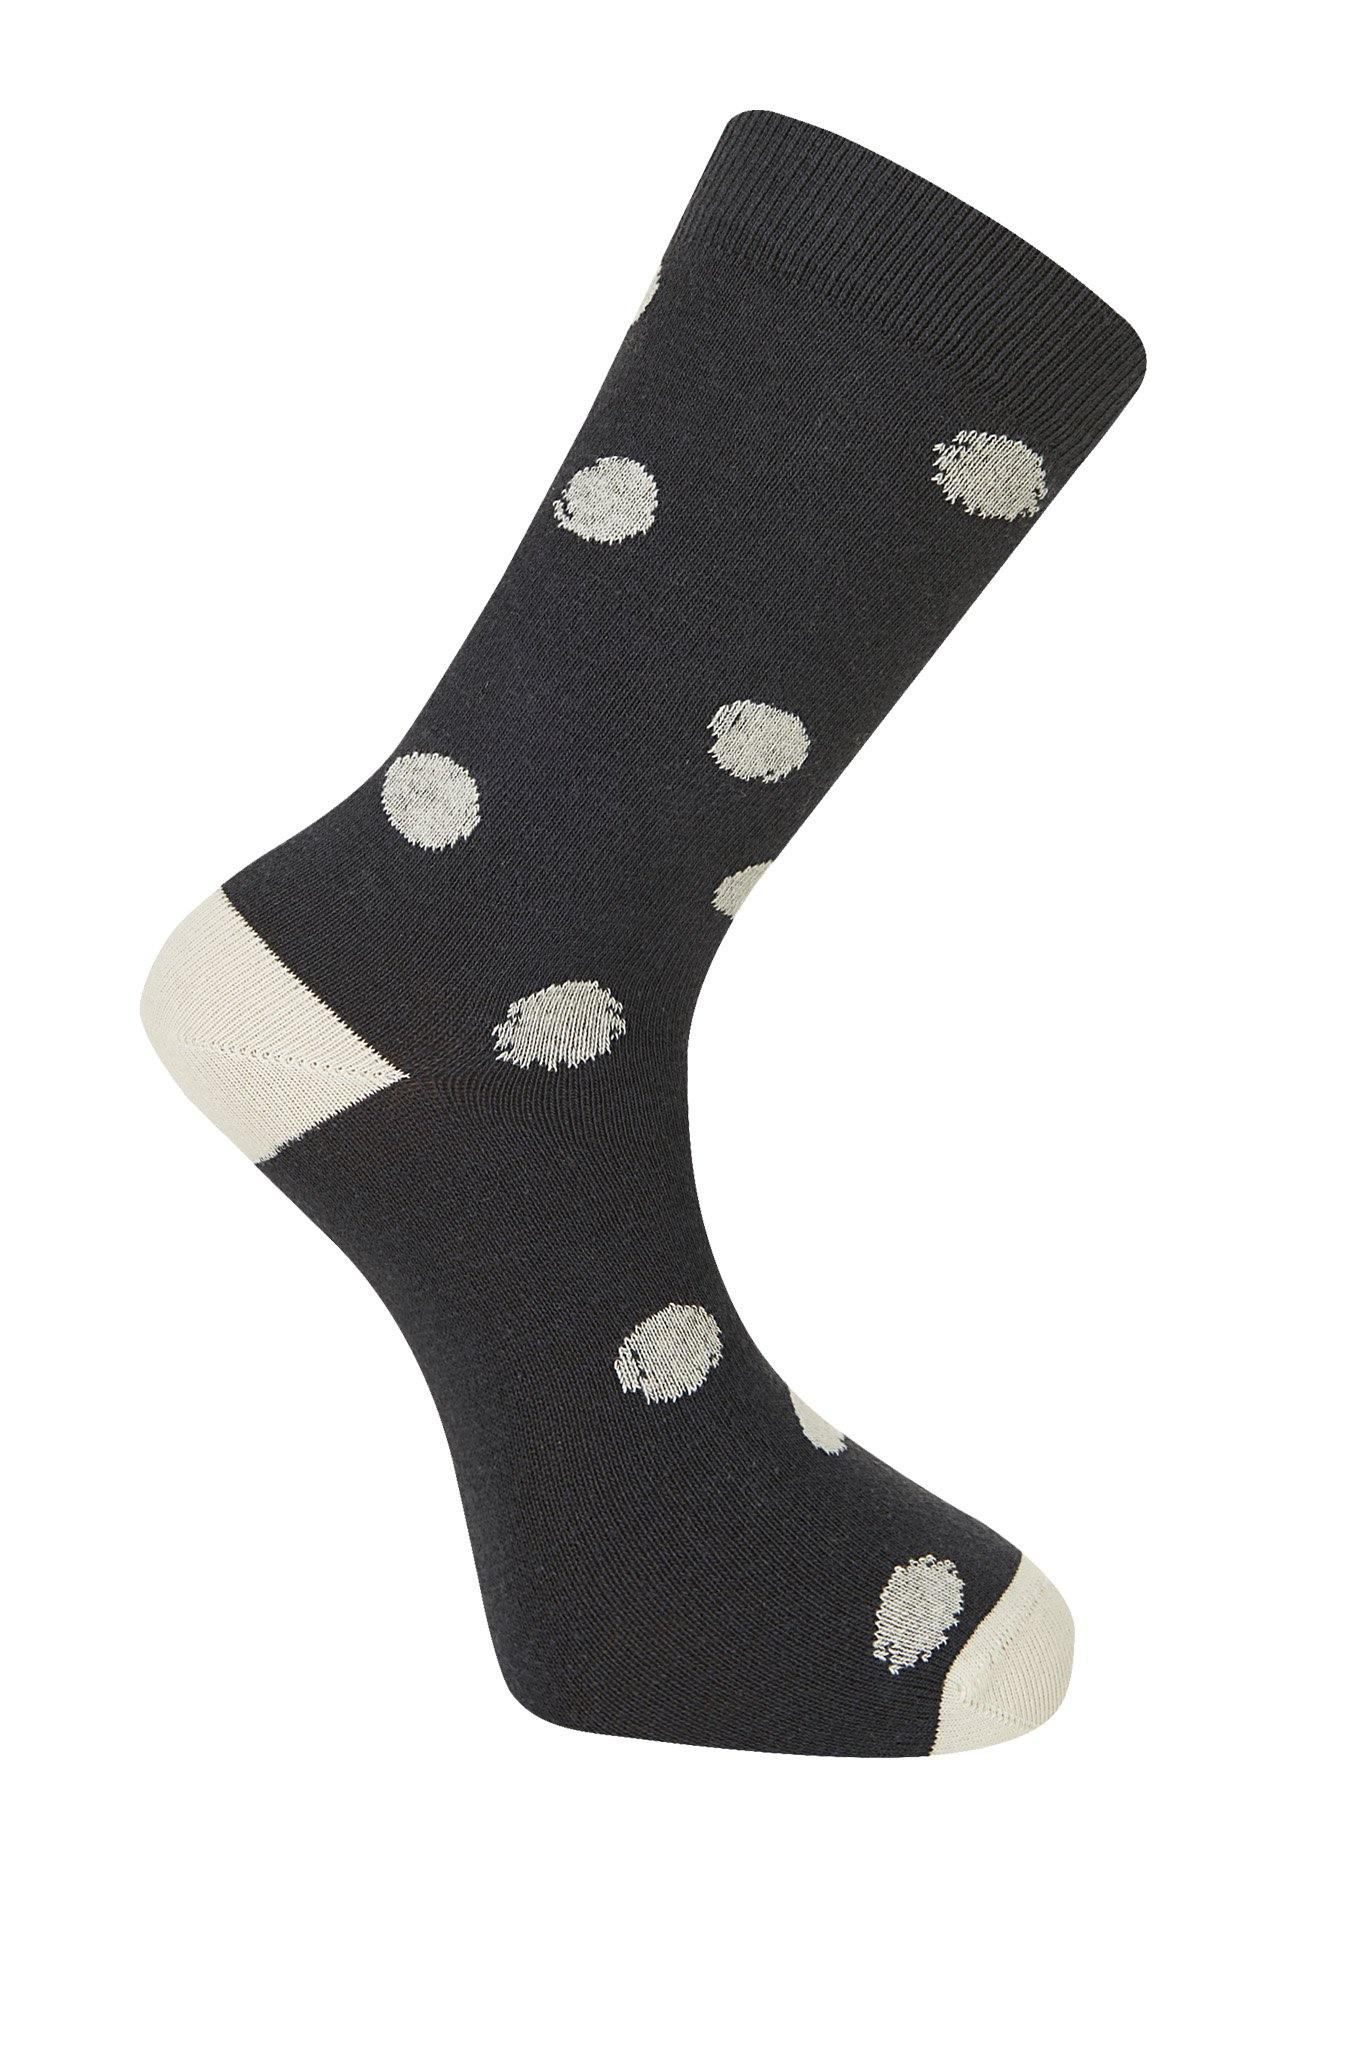 KUSAMA DOT Coal Organic Cotton Socks - Komodo Fashion